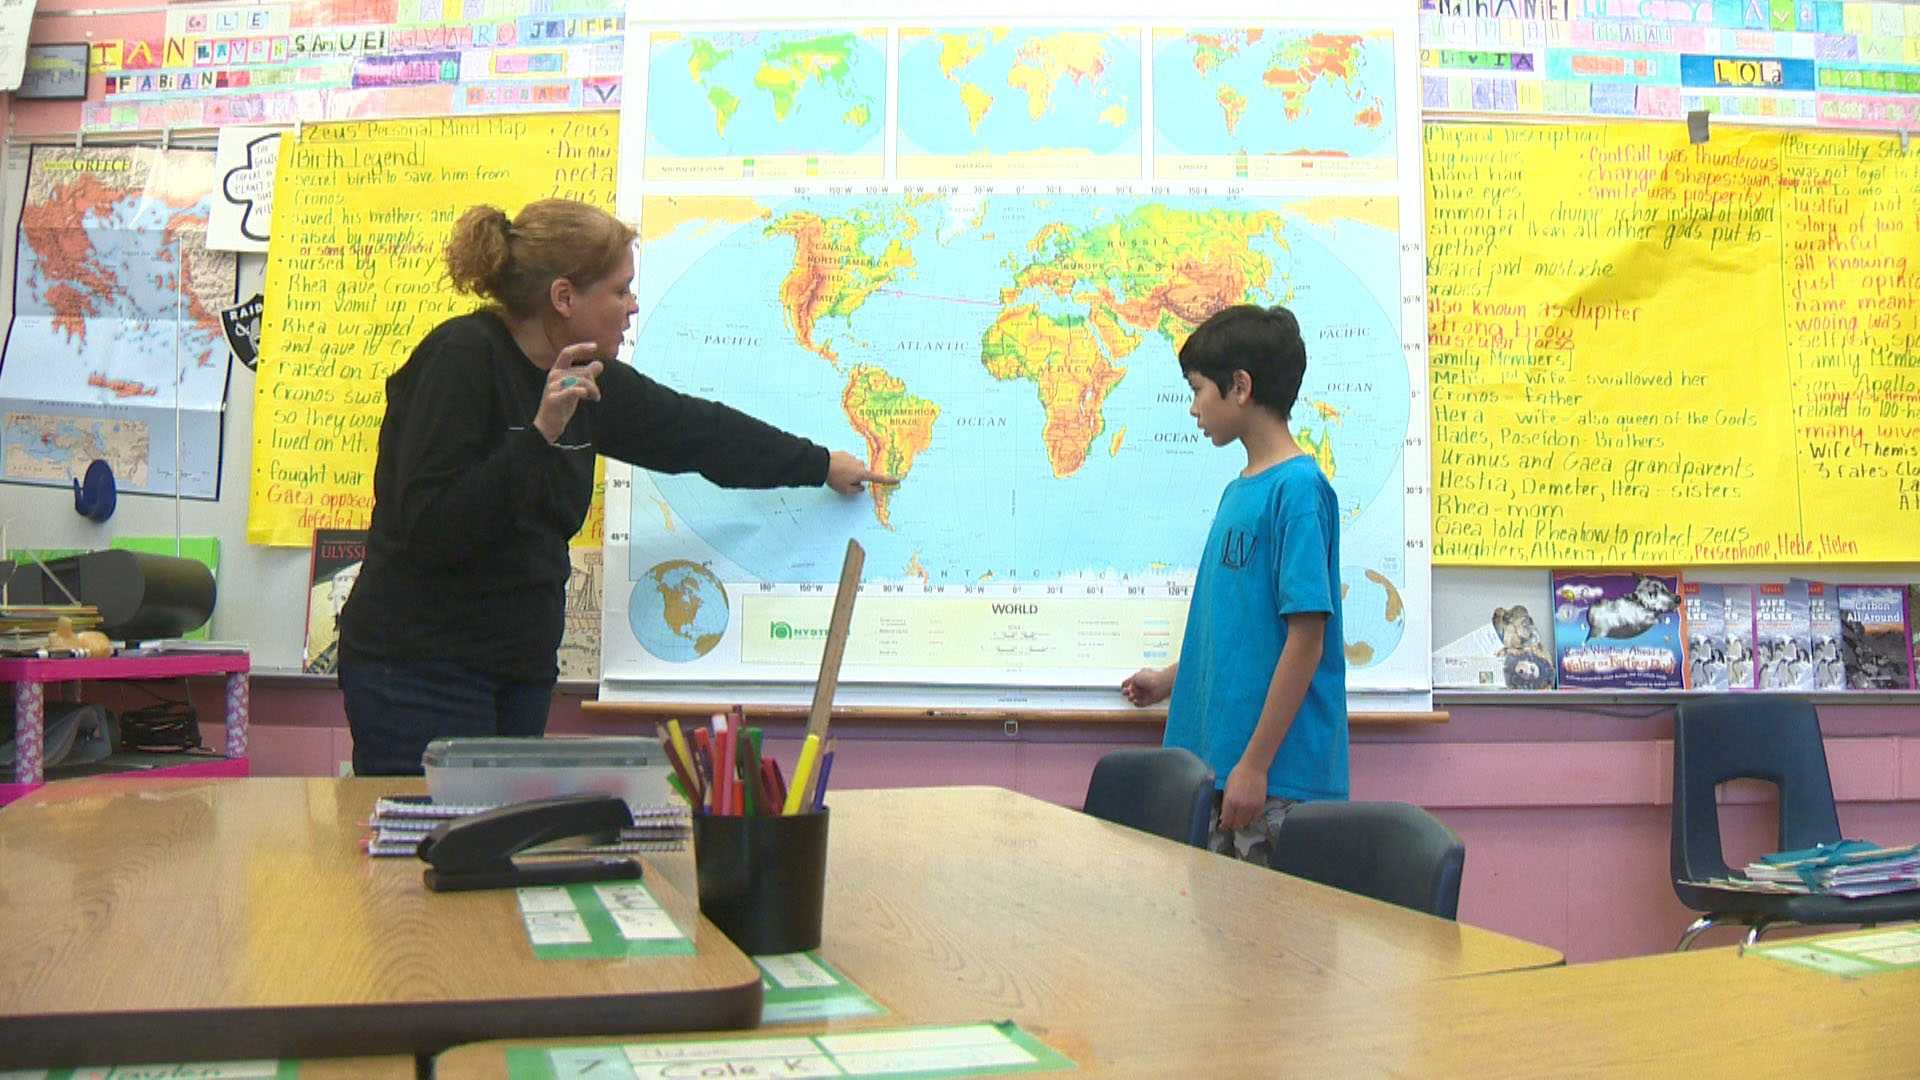 Kim Williams, a 6th-grade teacher at Leonardo DaVinci Elementary School in Sacramento, talks with her student, Aidan Fong, about their planned trip to Antarctica.